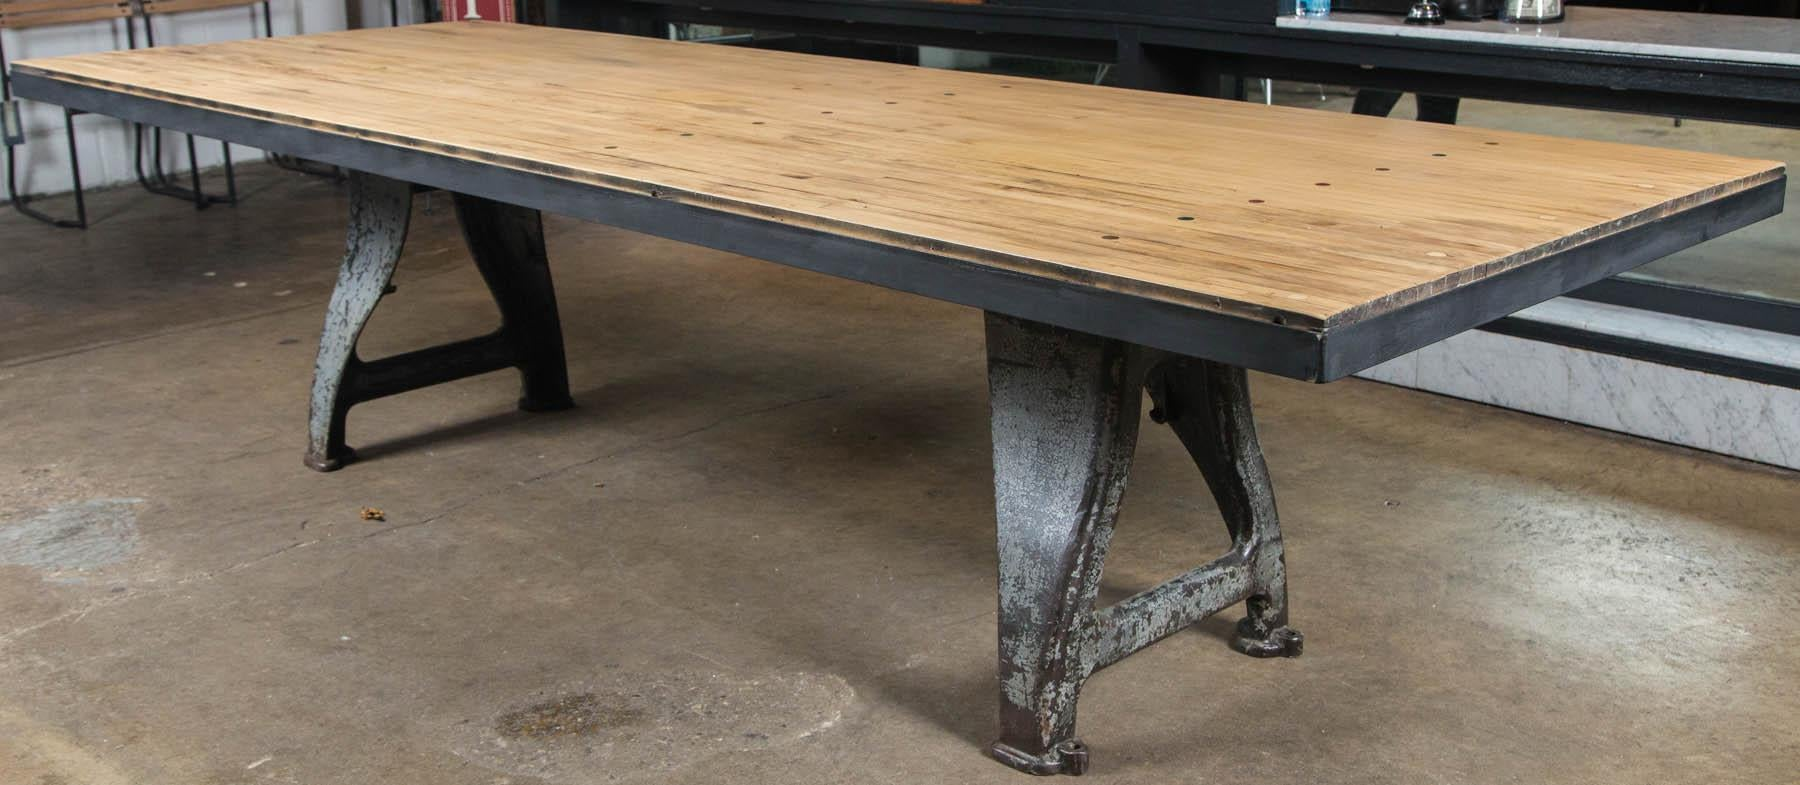 American Vintage Industrial Base Bowling Alley Table For Sale